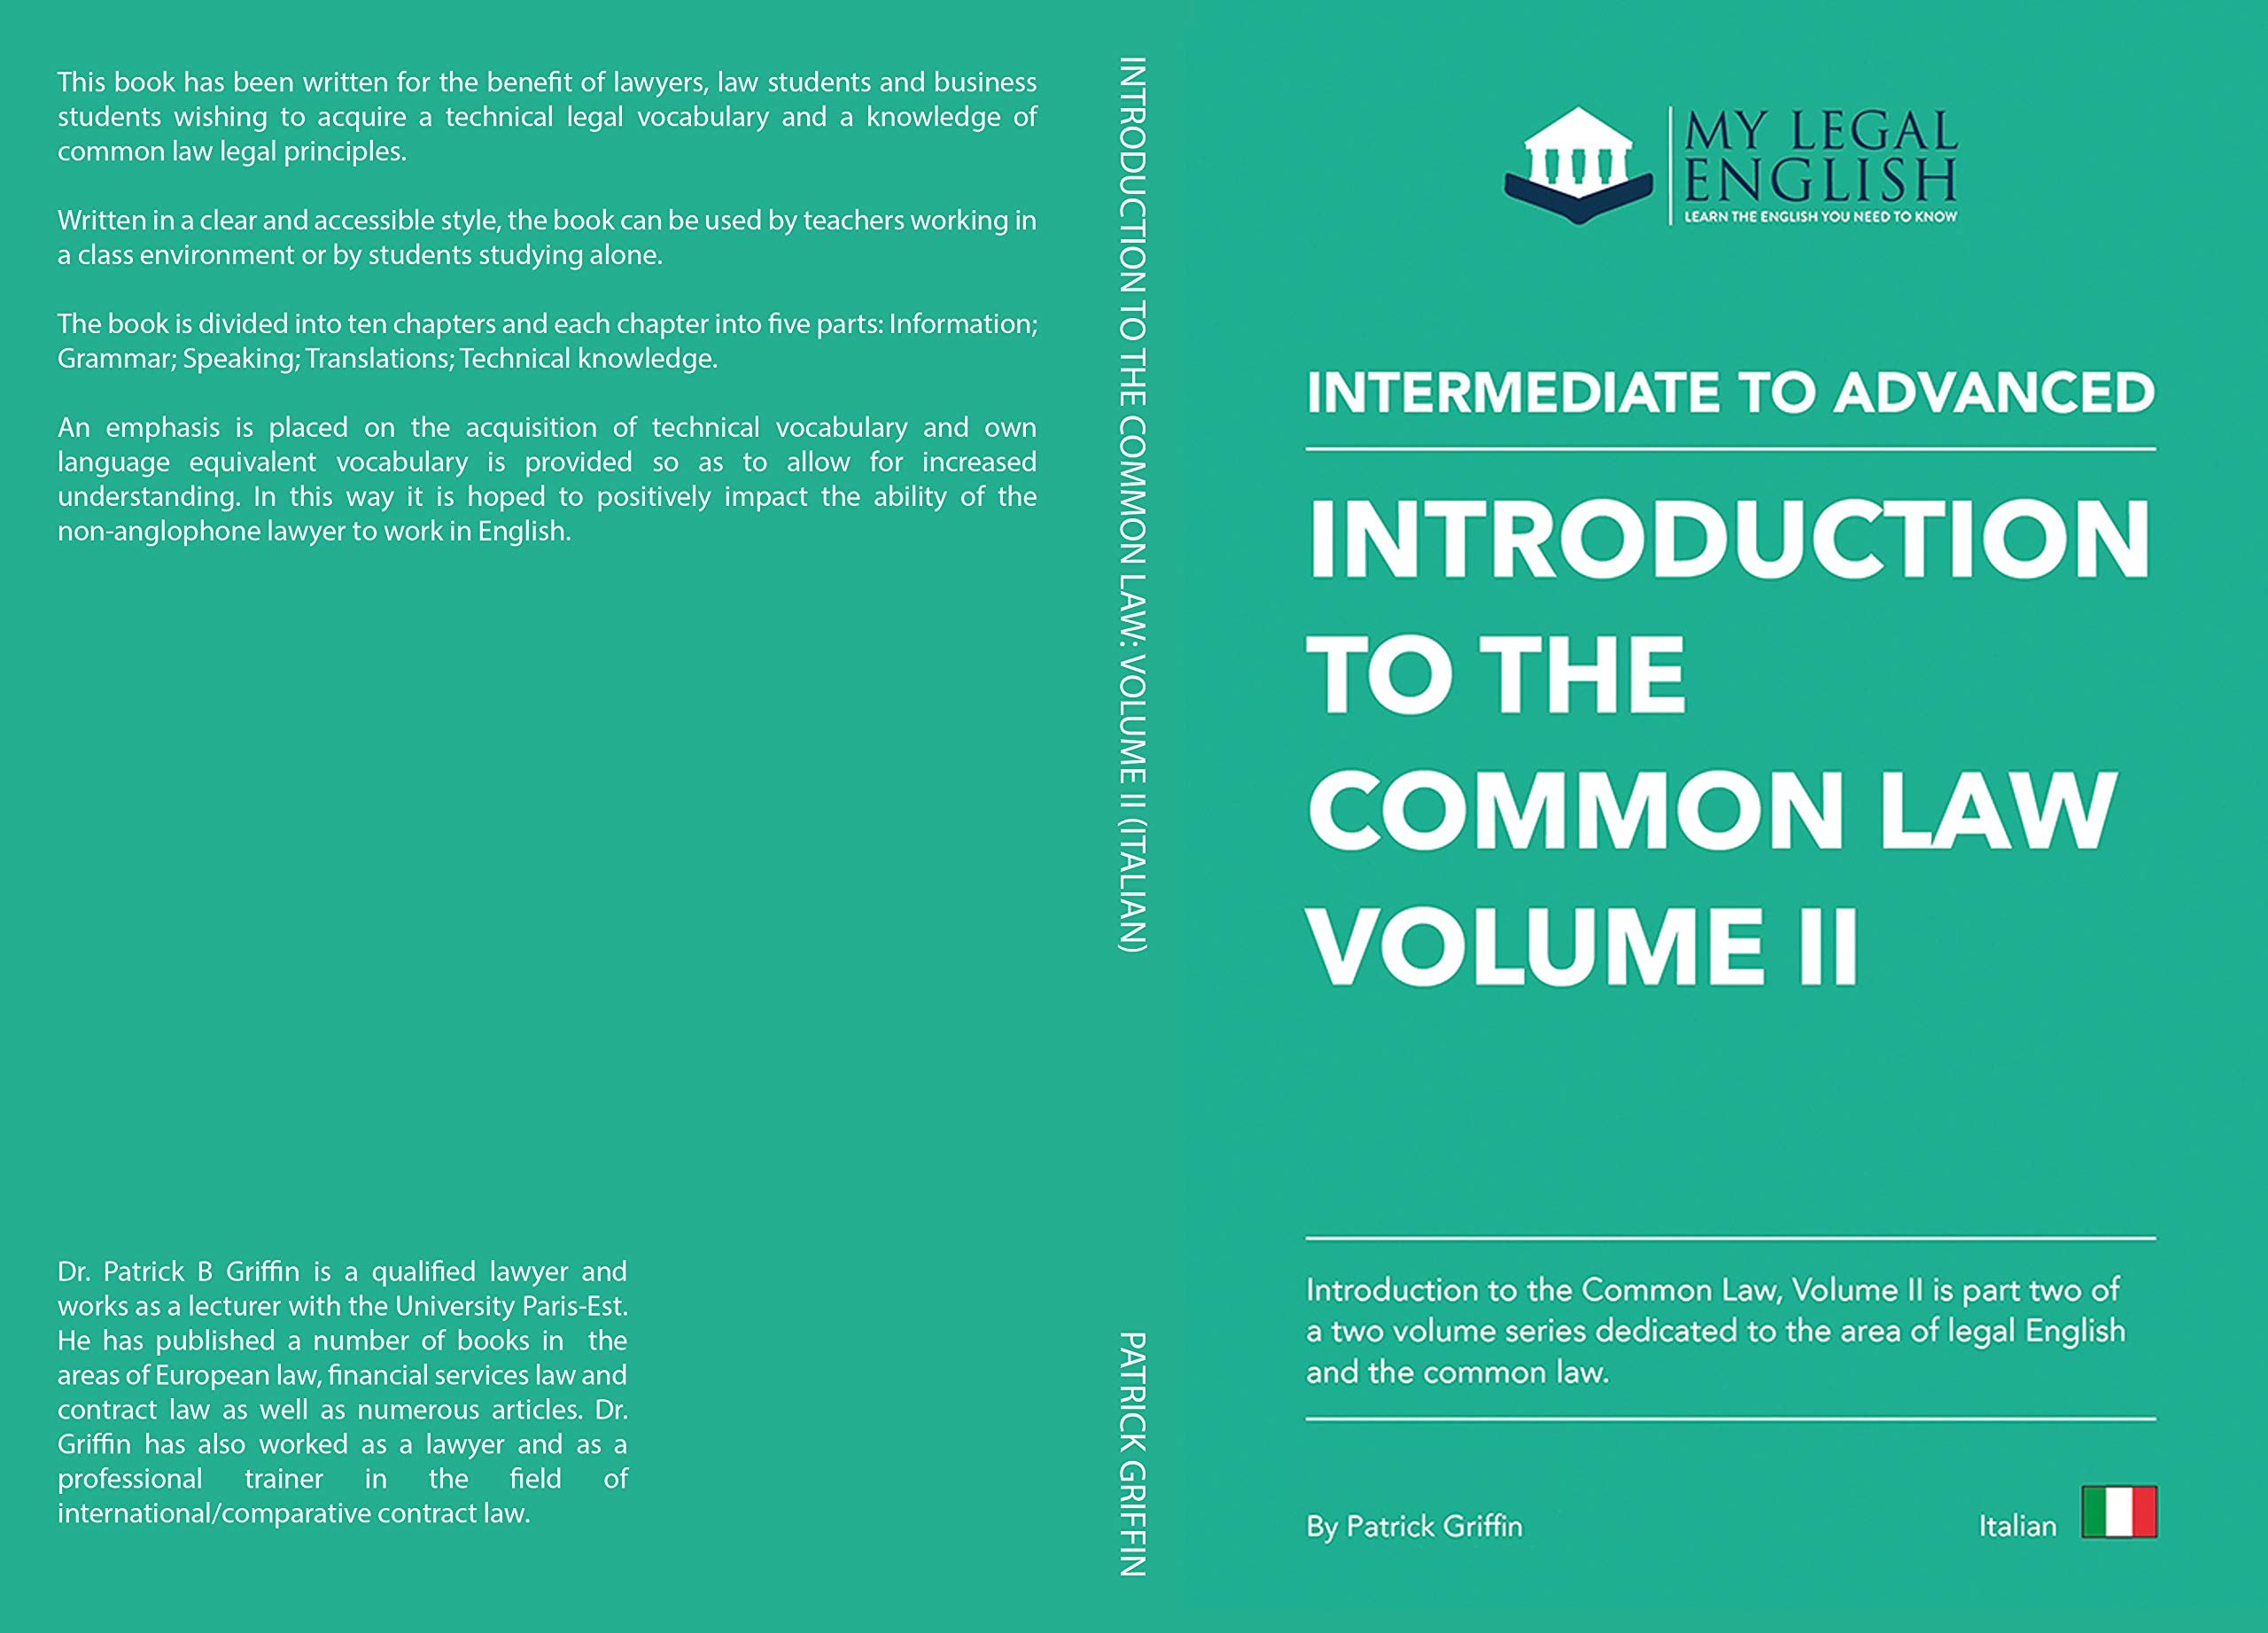 Introduction to the Common Law, Vol 2: English for the Common Law, Italian language edition